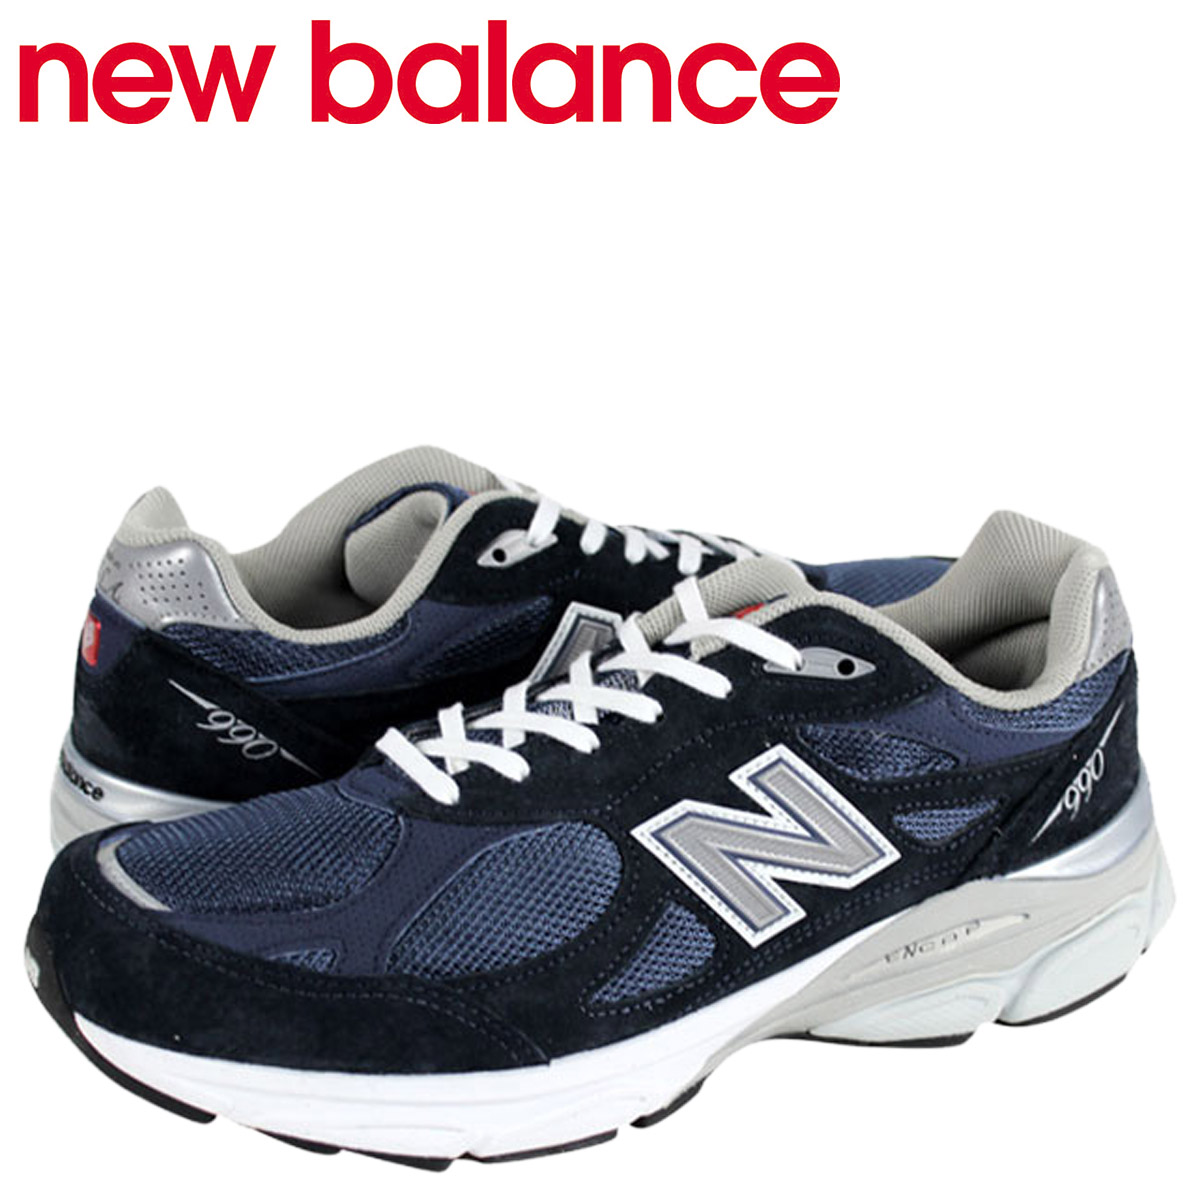 save off c1bdd e5175 new balance new balance 990 M990 NV3 MADE IN USA sneaker M990NV3 D wise  mens shoes Navy